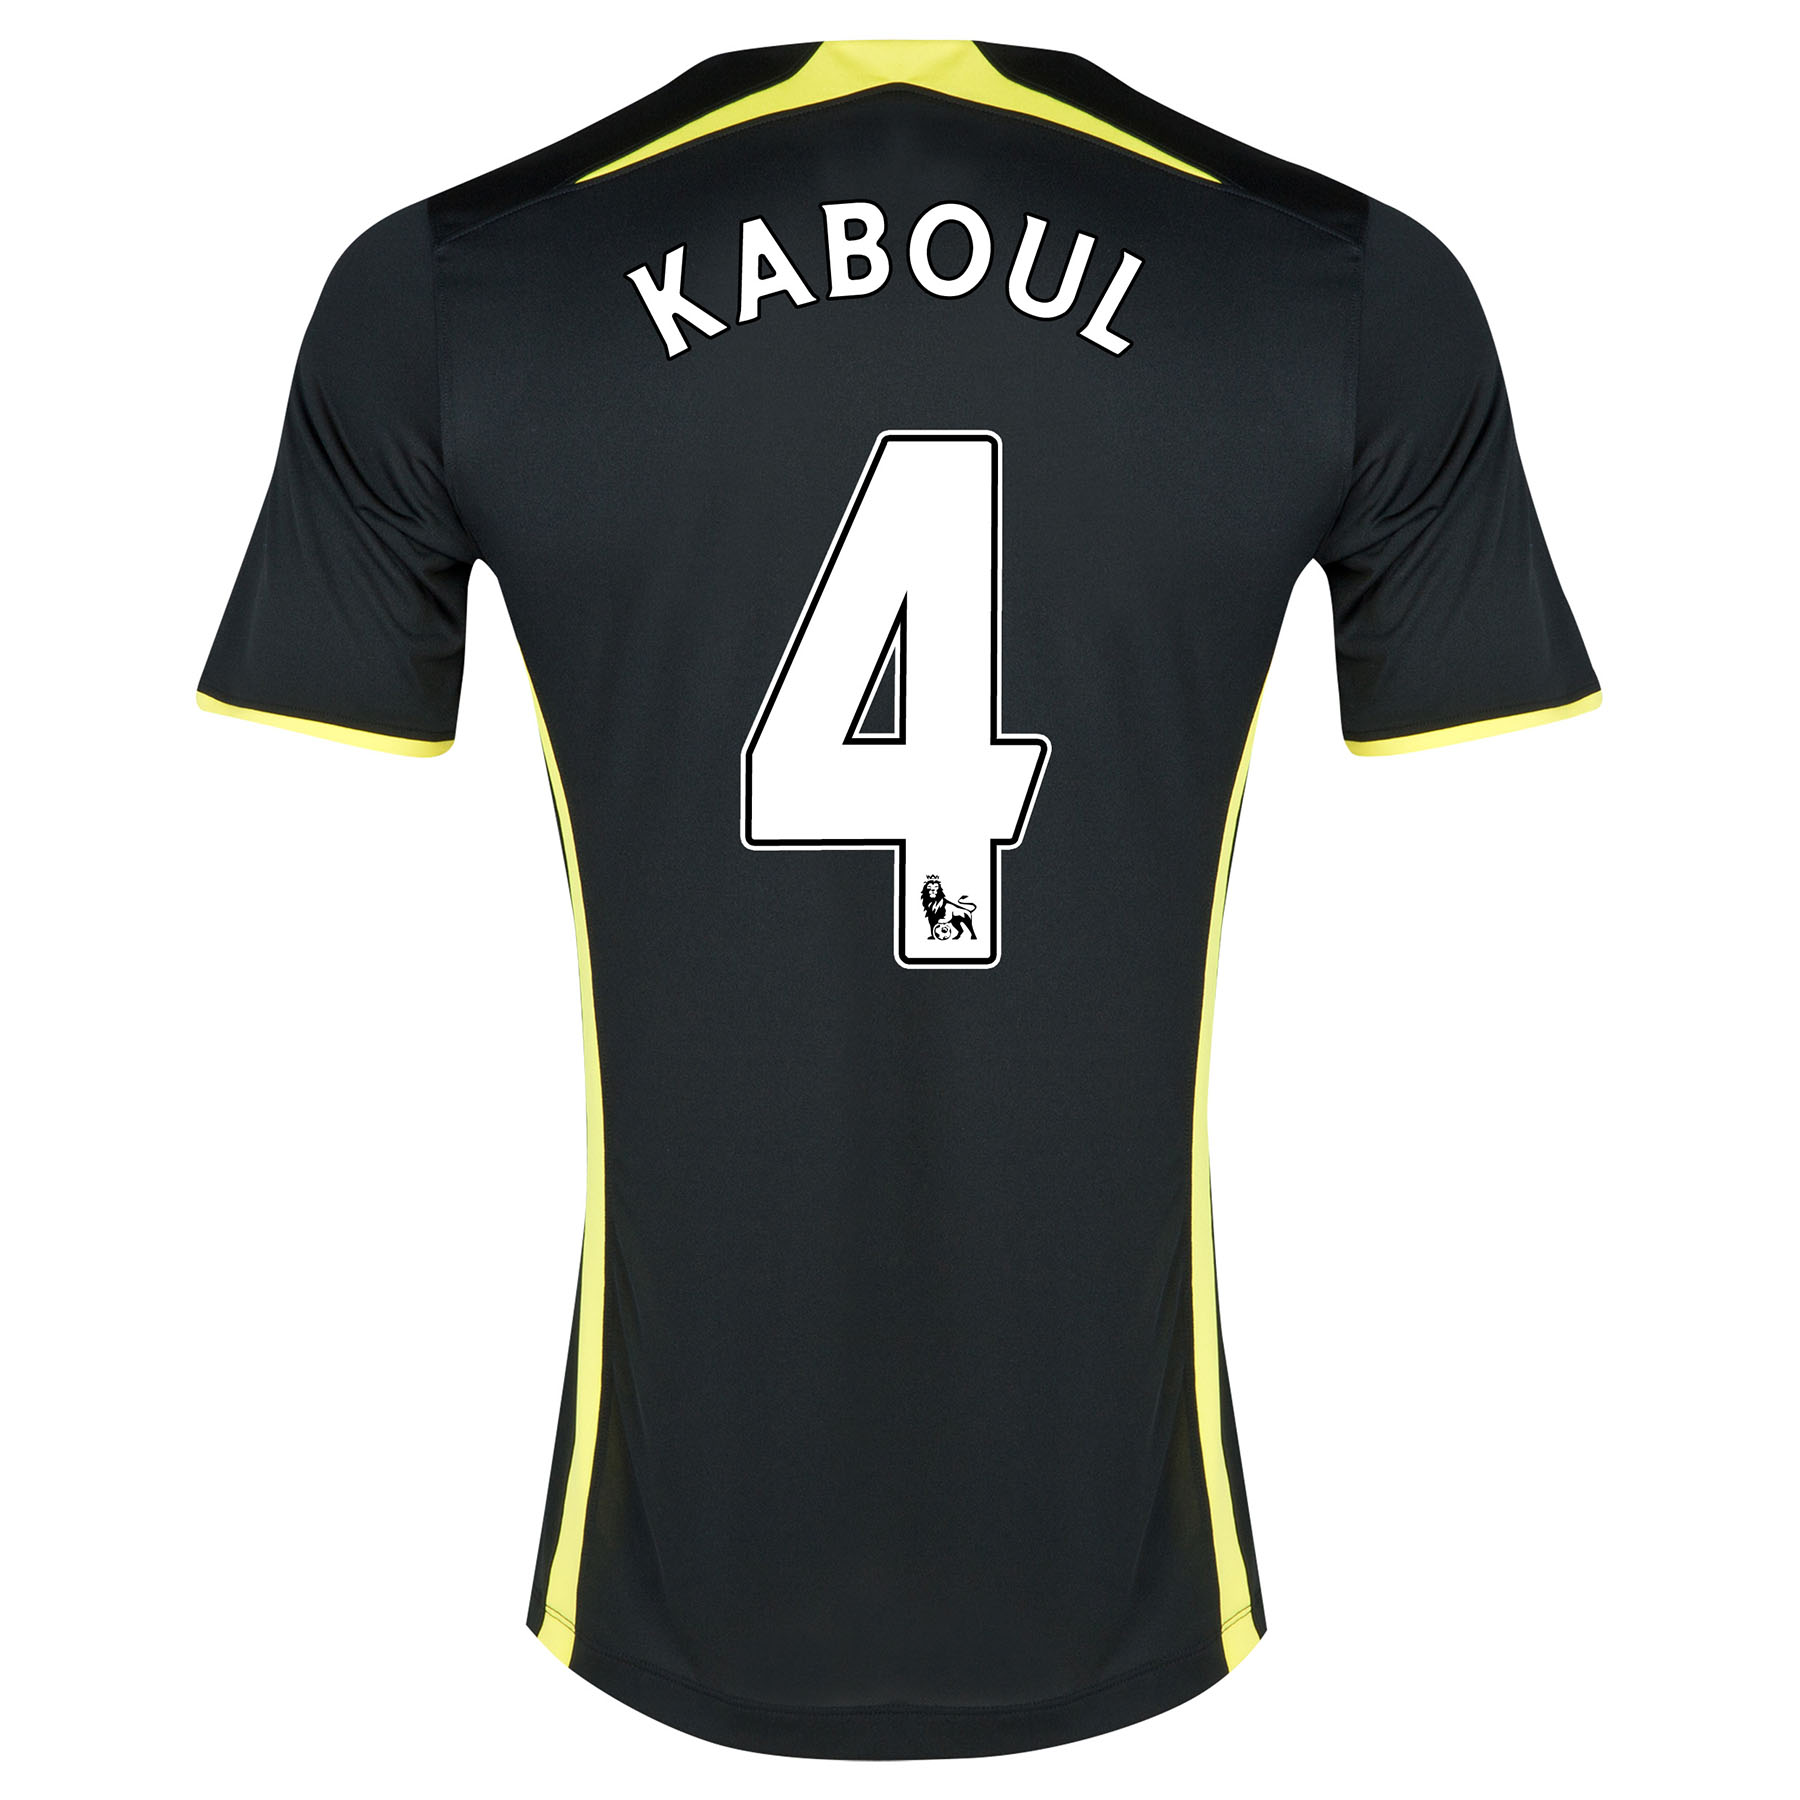 Tottenham Hotspur Away Shirt 2014/15 - Womens with Kaboul 4 printing